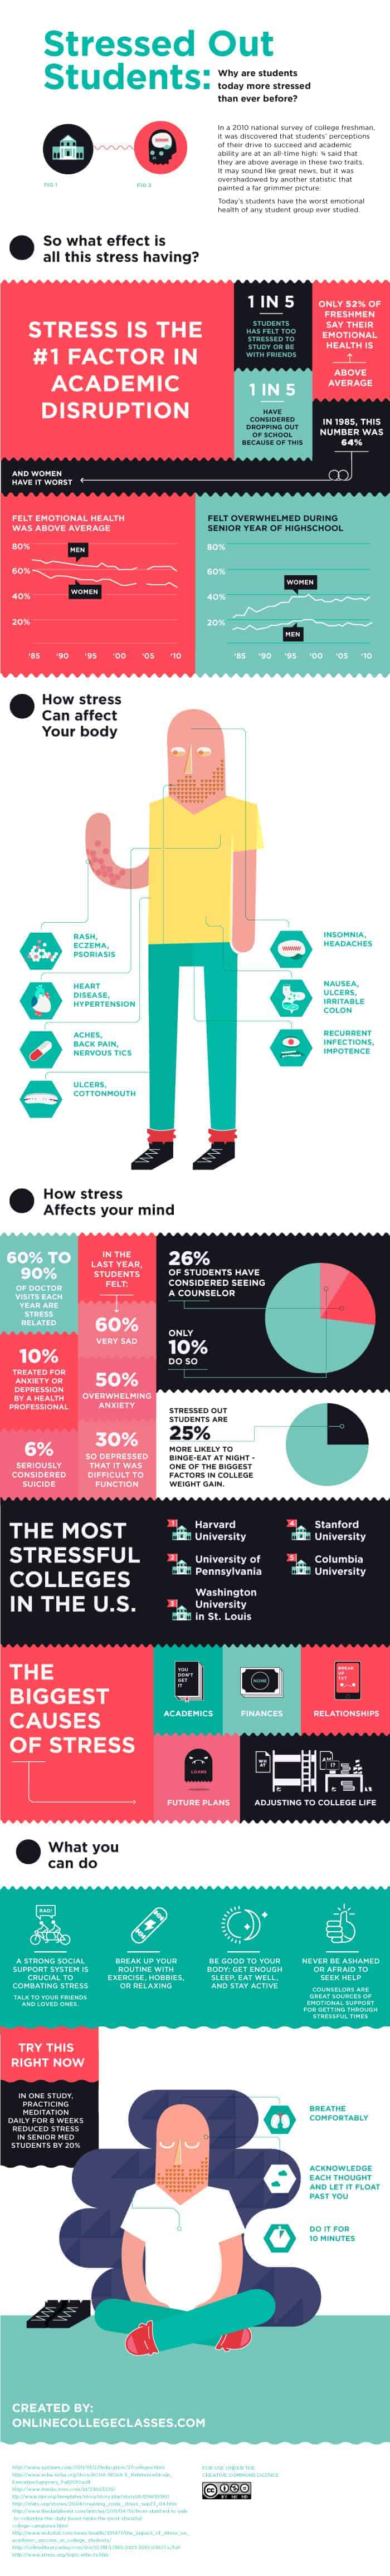 Stressed-Out Students | Daily Infographic